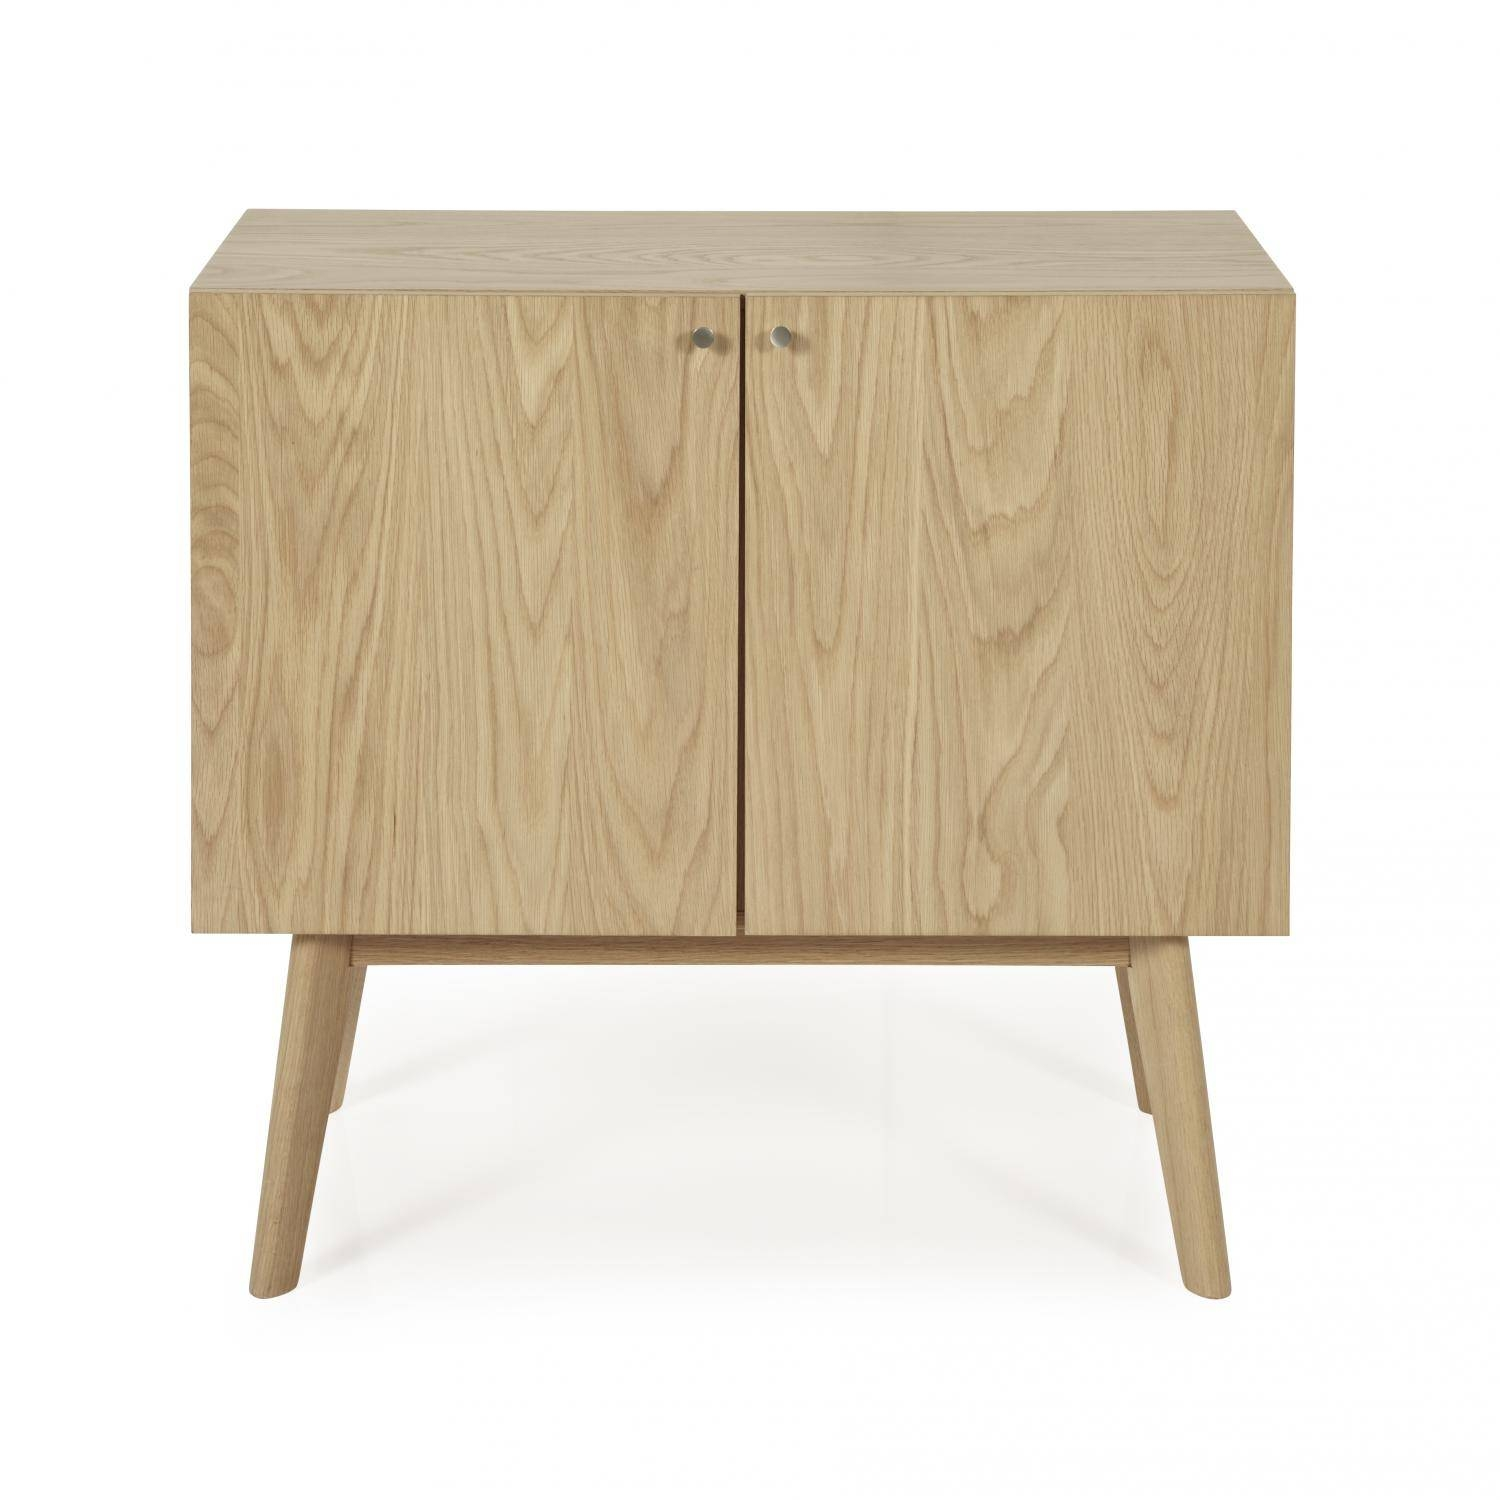 Finchley Small Sideboard – Next Day Delivery Finchley Small Inside Small Low Sideboards (View 7 of 15)